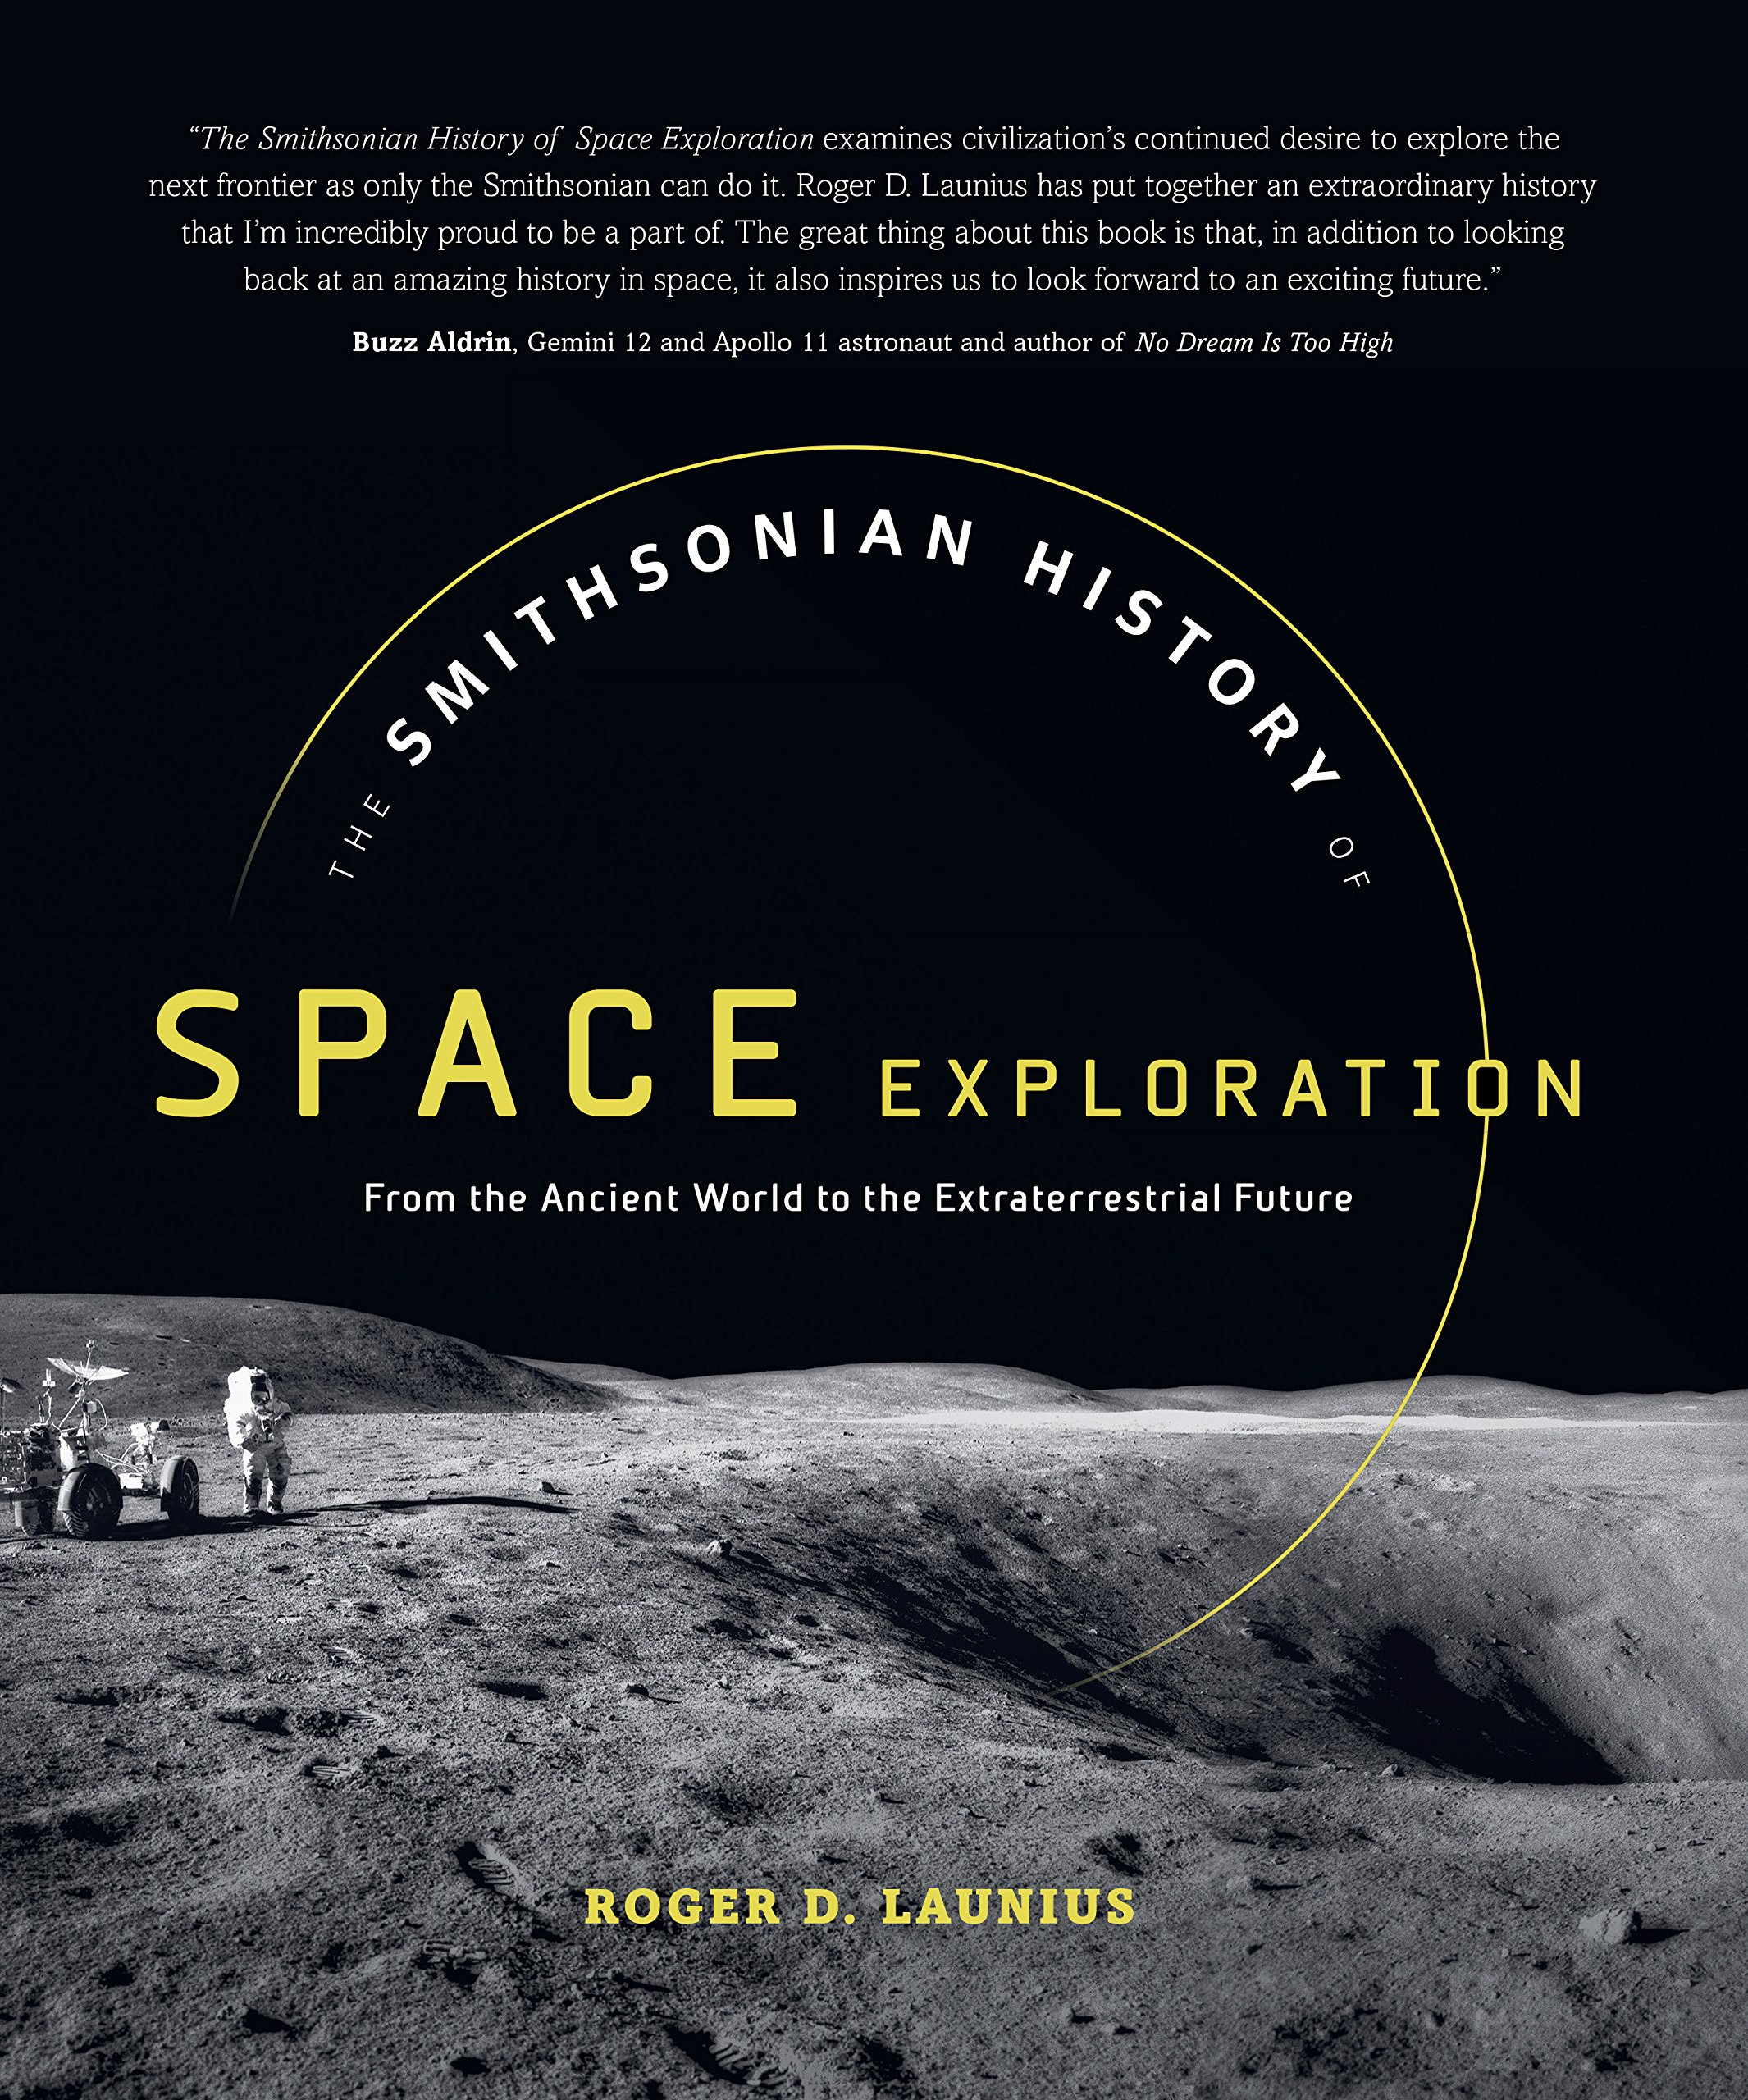 Image result for The Smithsonian History of Space Exploration: From the Ancient World to the Extraterrestrial Future